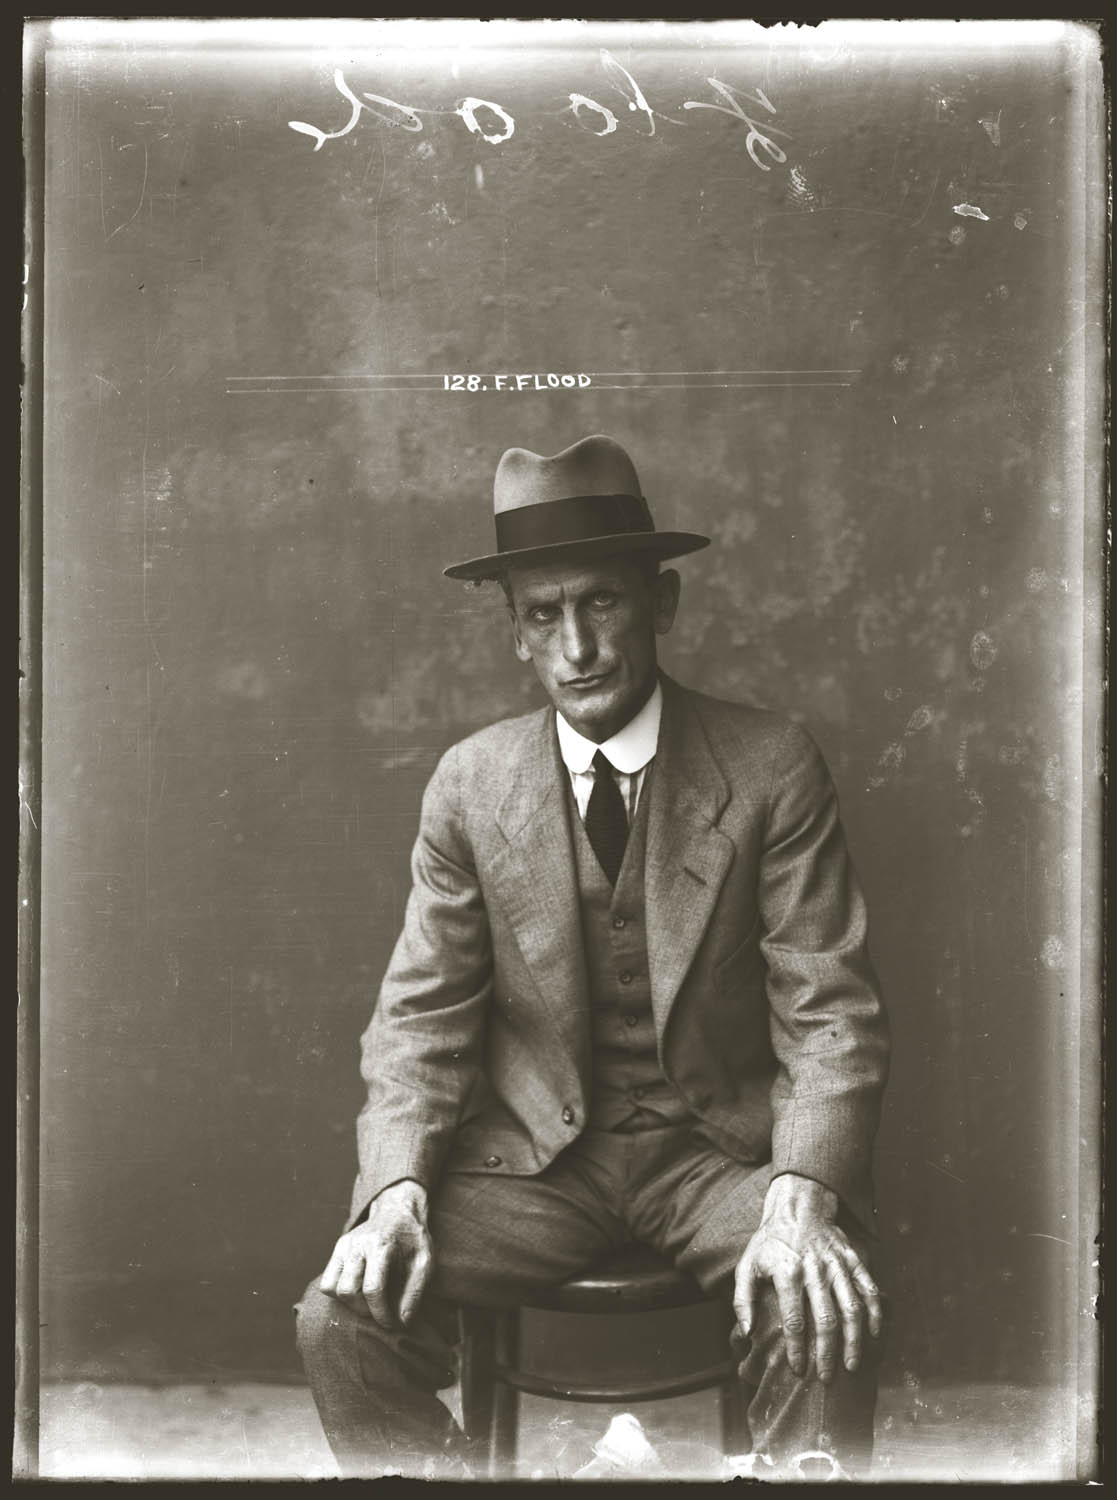 Mug shot of Francis Flood, Central Police Station, ca. May 1920.